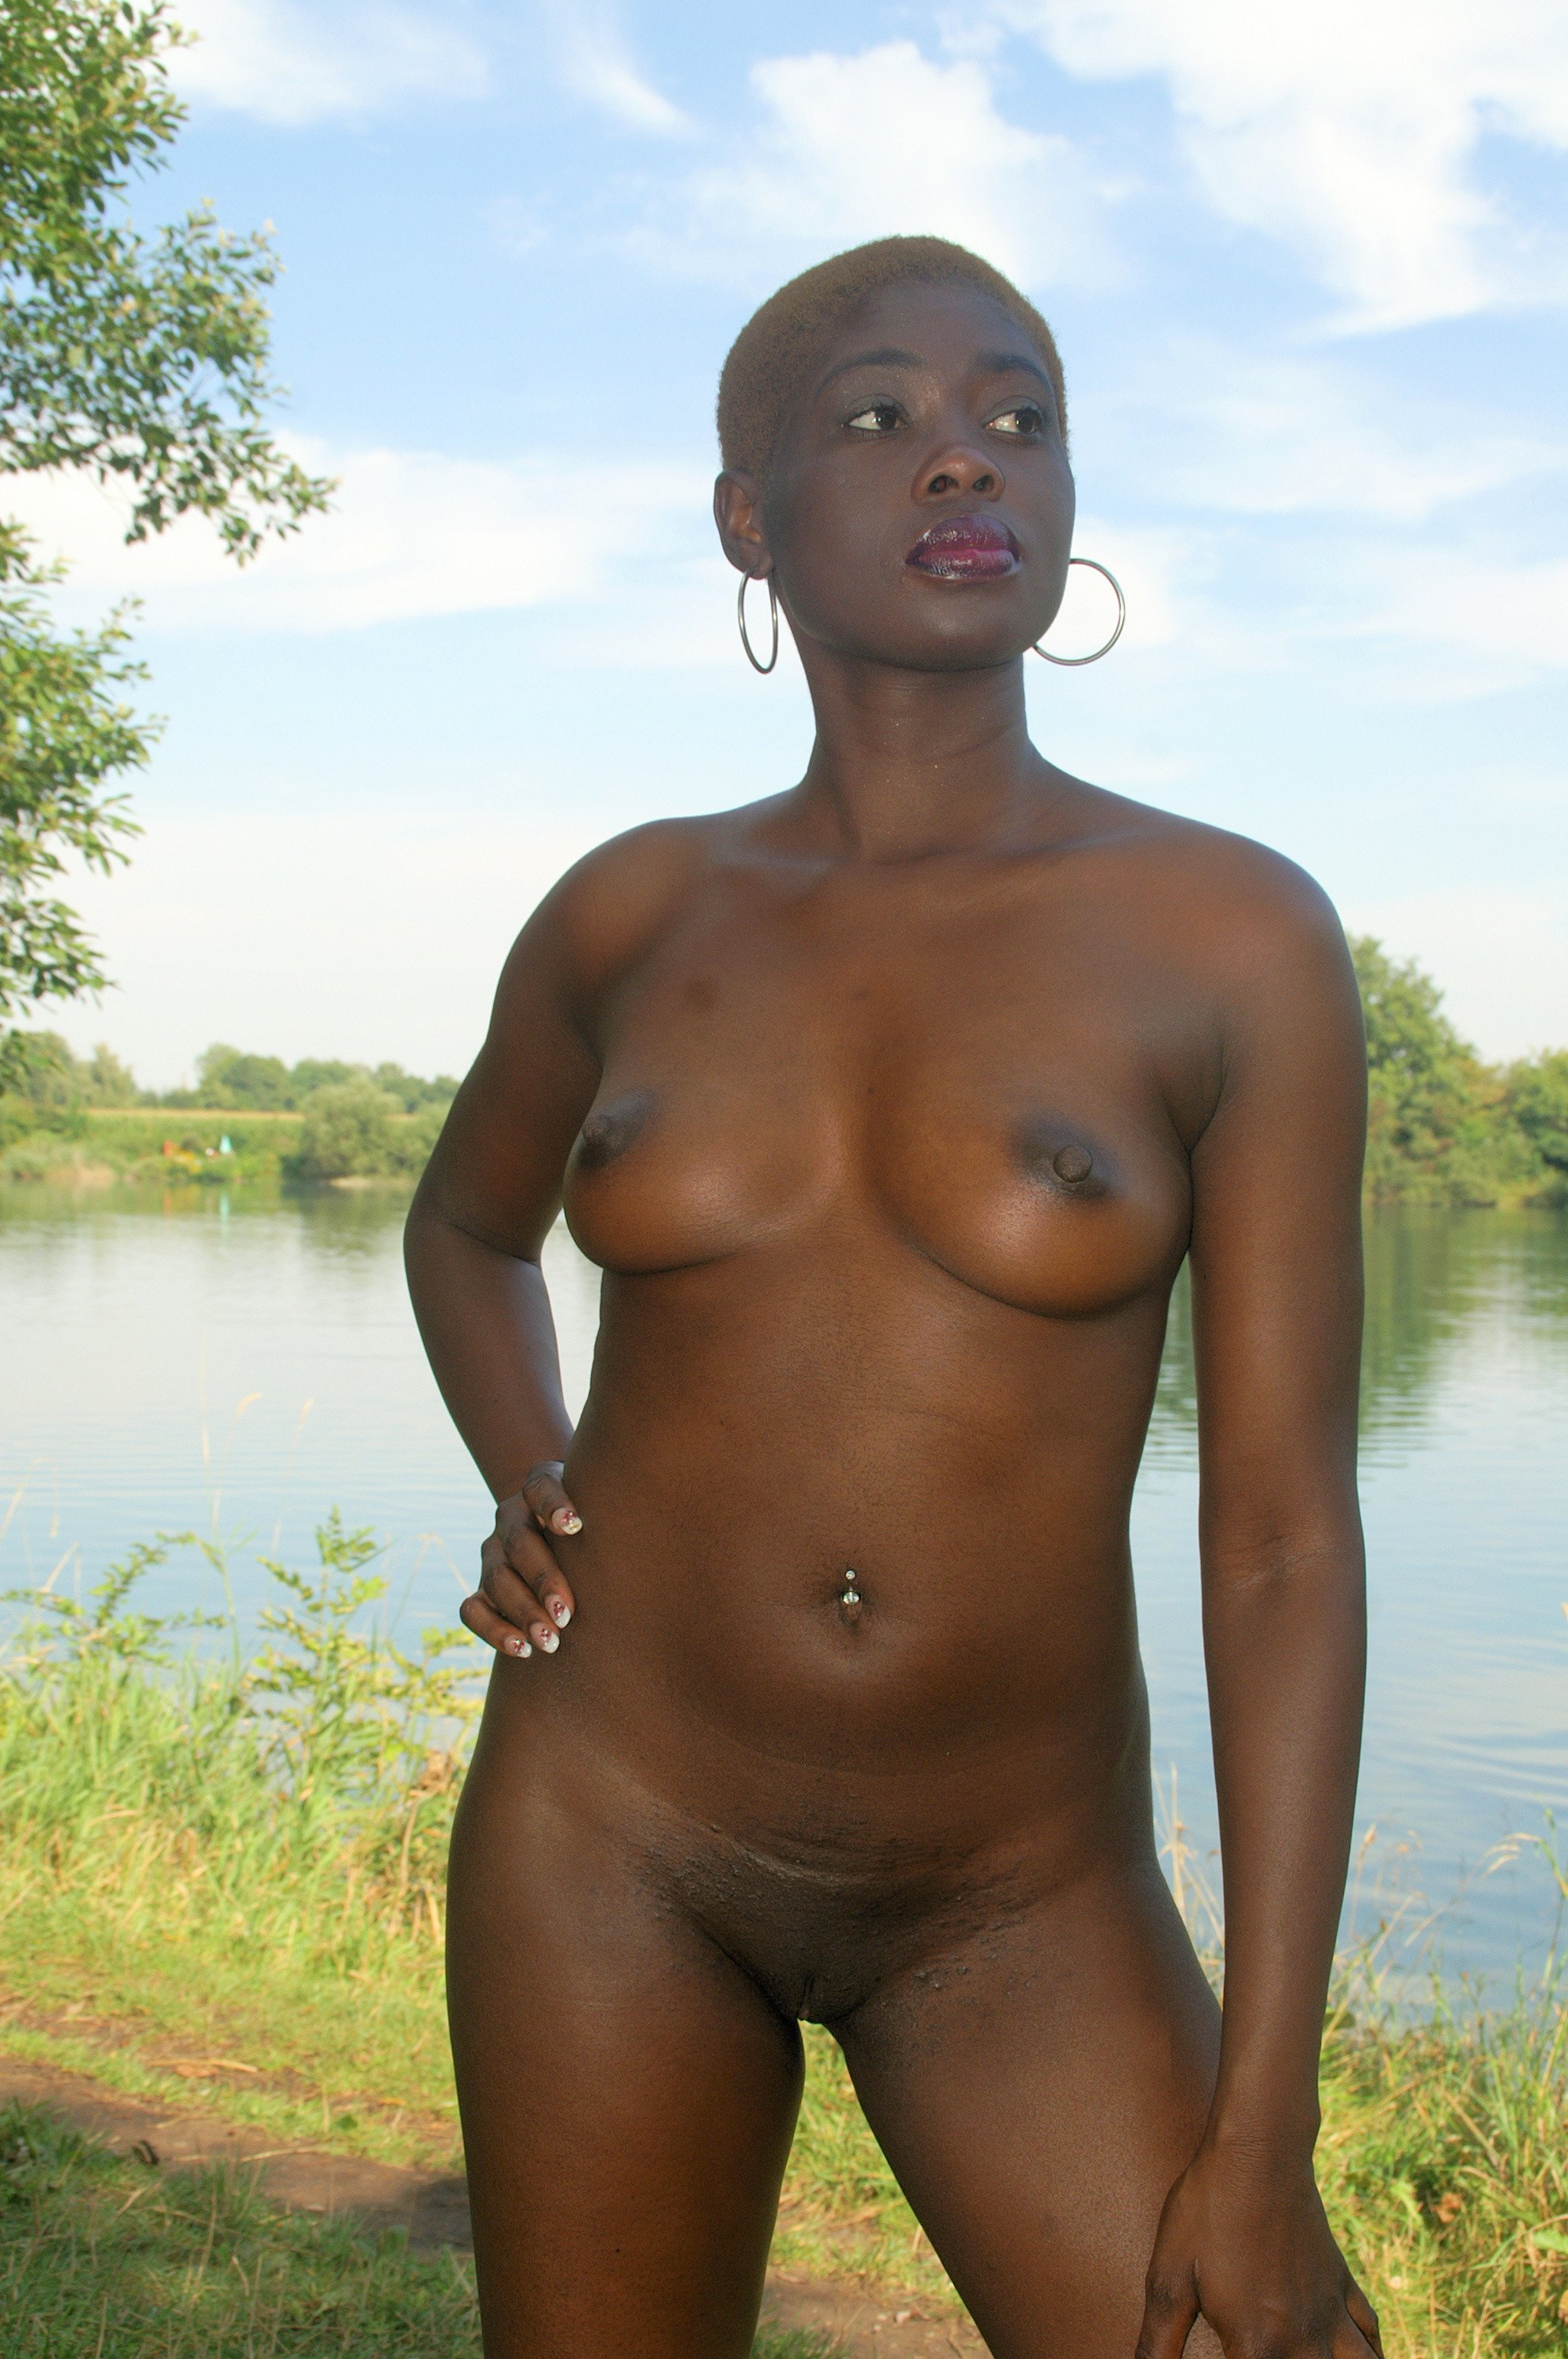 nude-kenyan-hot-babes-brother-sister-india-sex-image